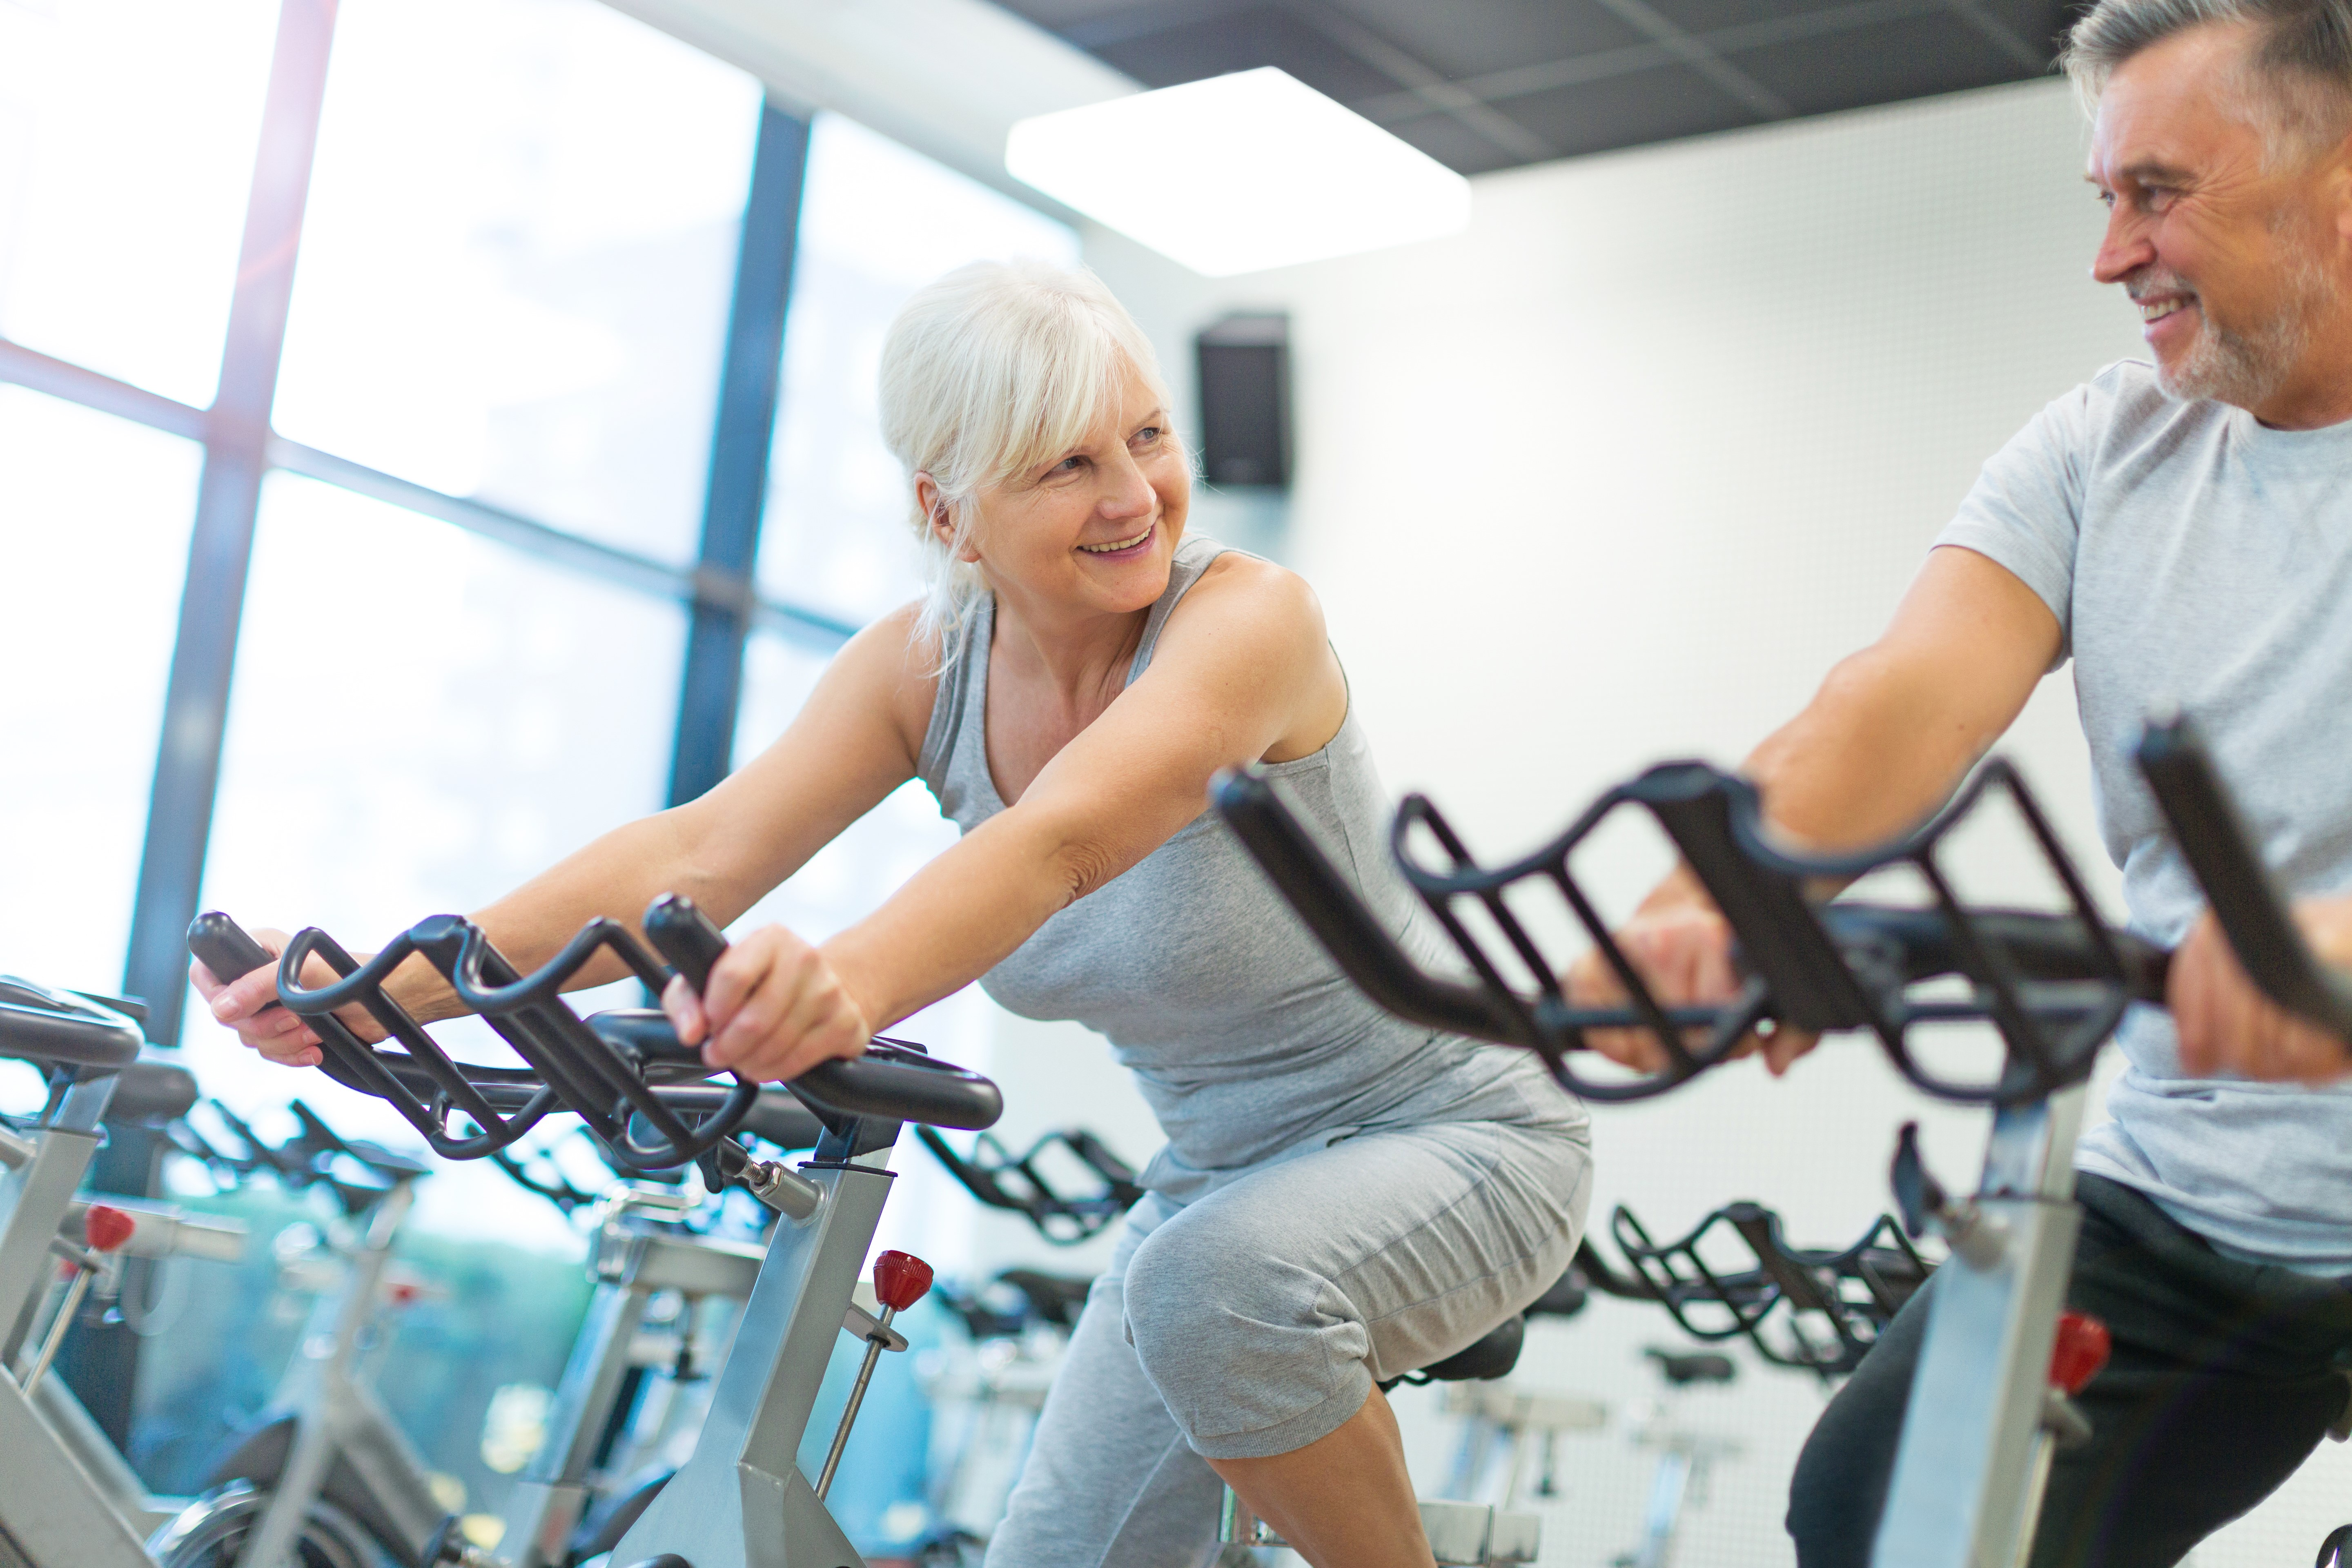 Eligible Seniors Now Offered YMCA Memberships via SilverSneakers